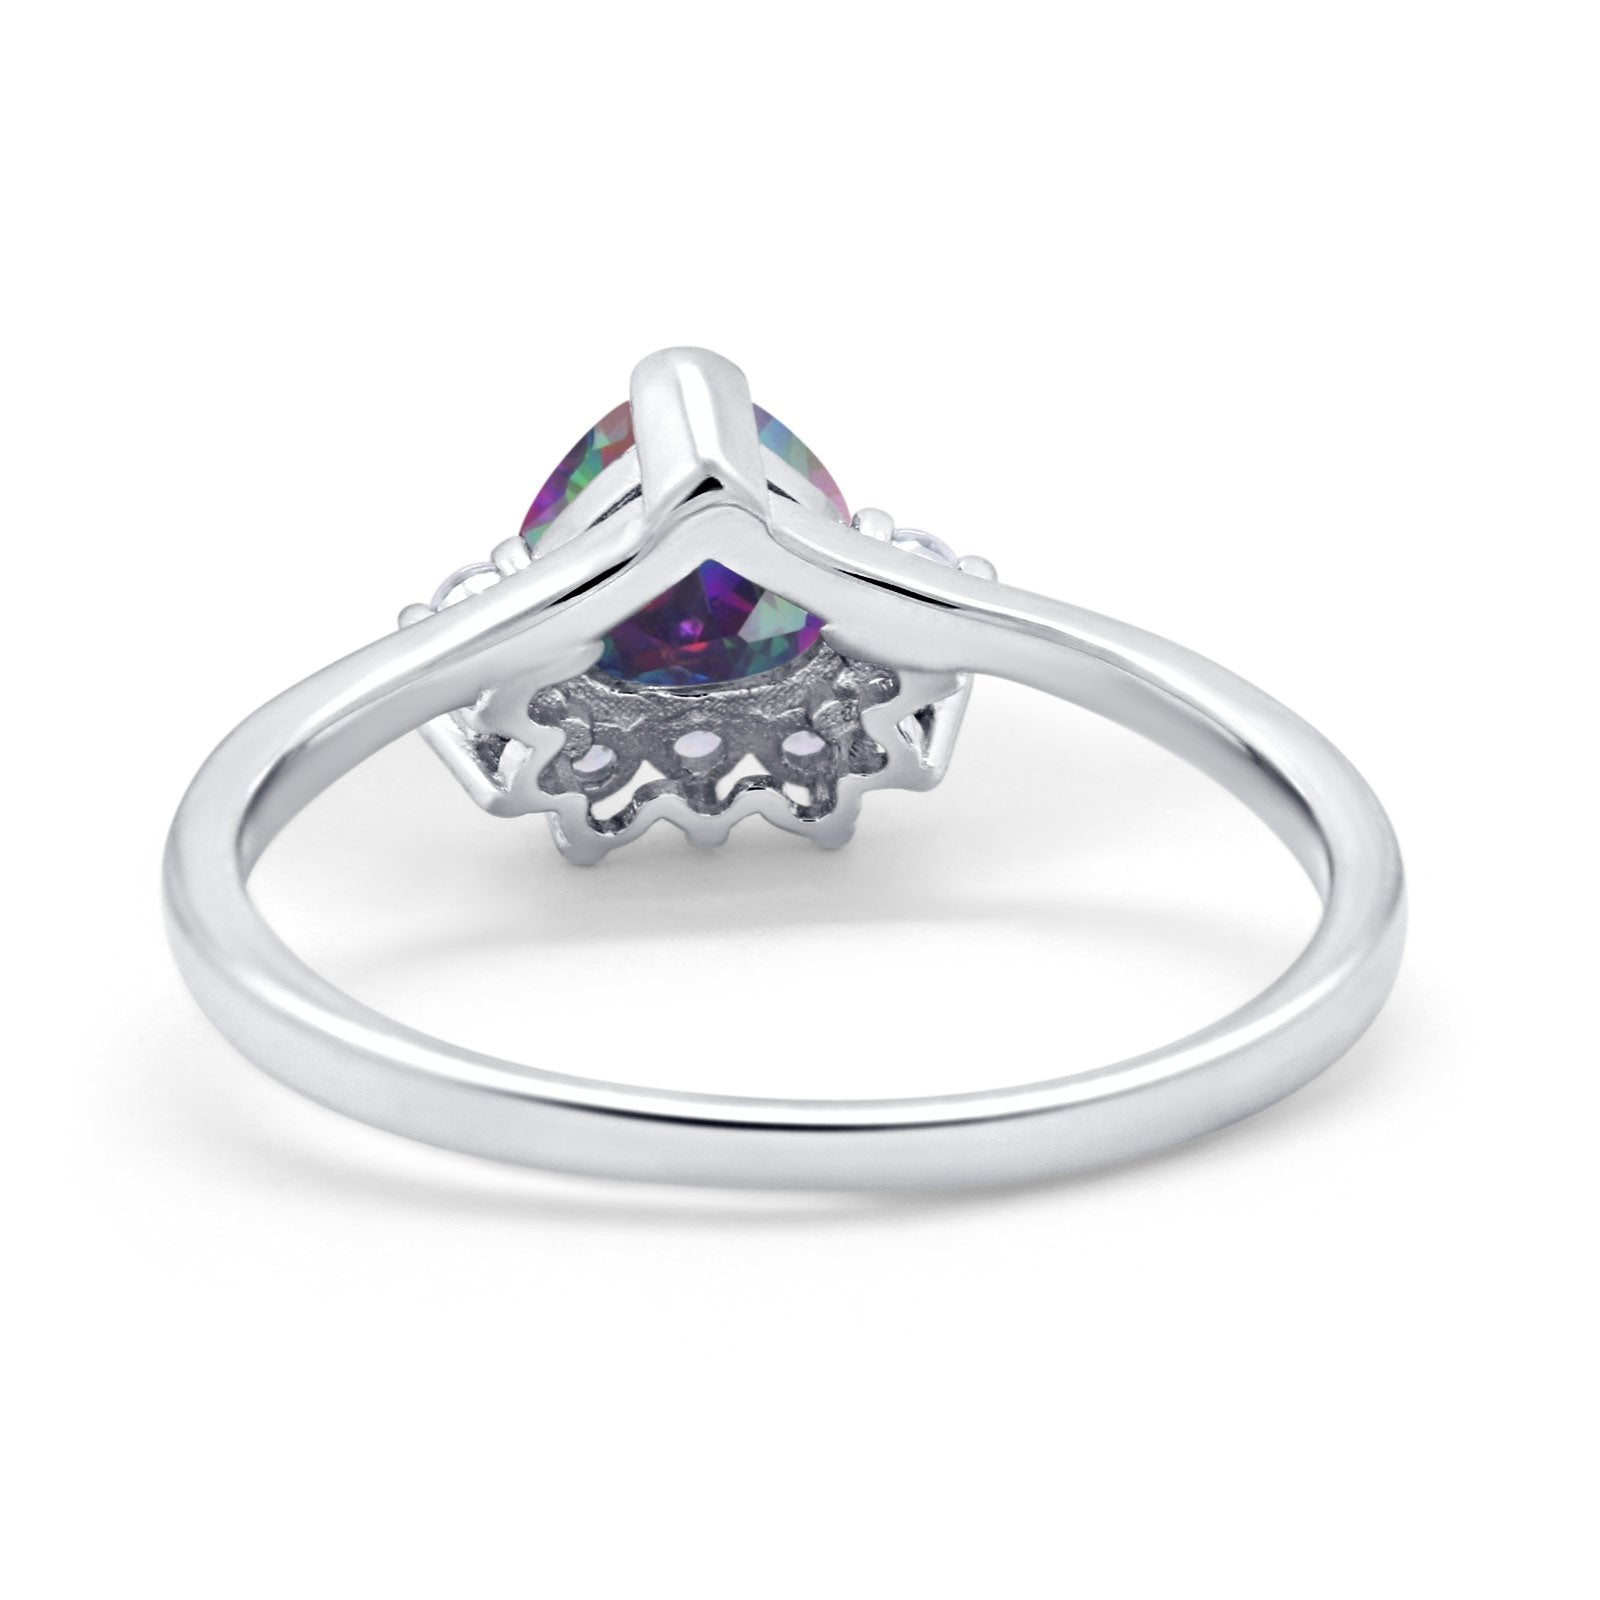 Heart Promise Ring Wedding Ring Simulated Cubic Zirconia 925 Sterling Silver